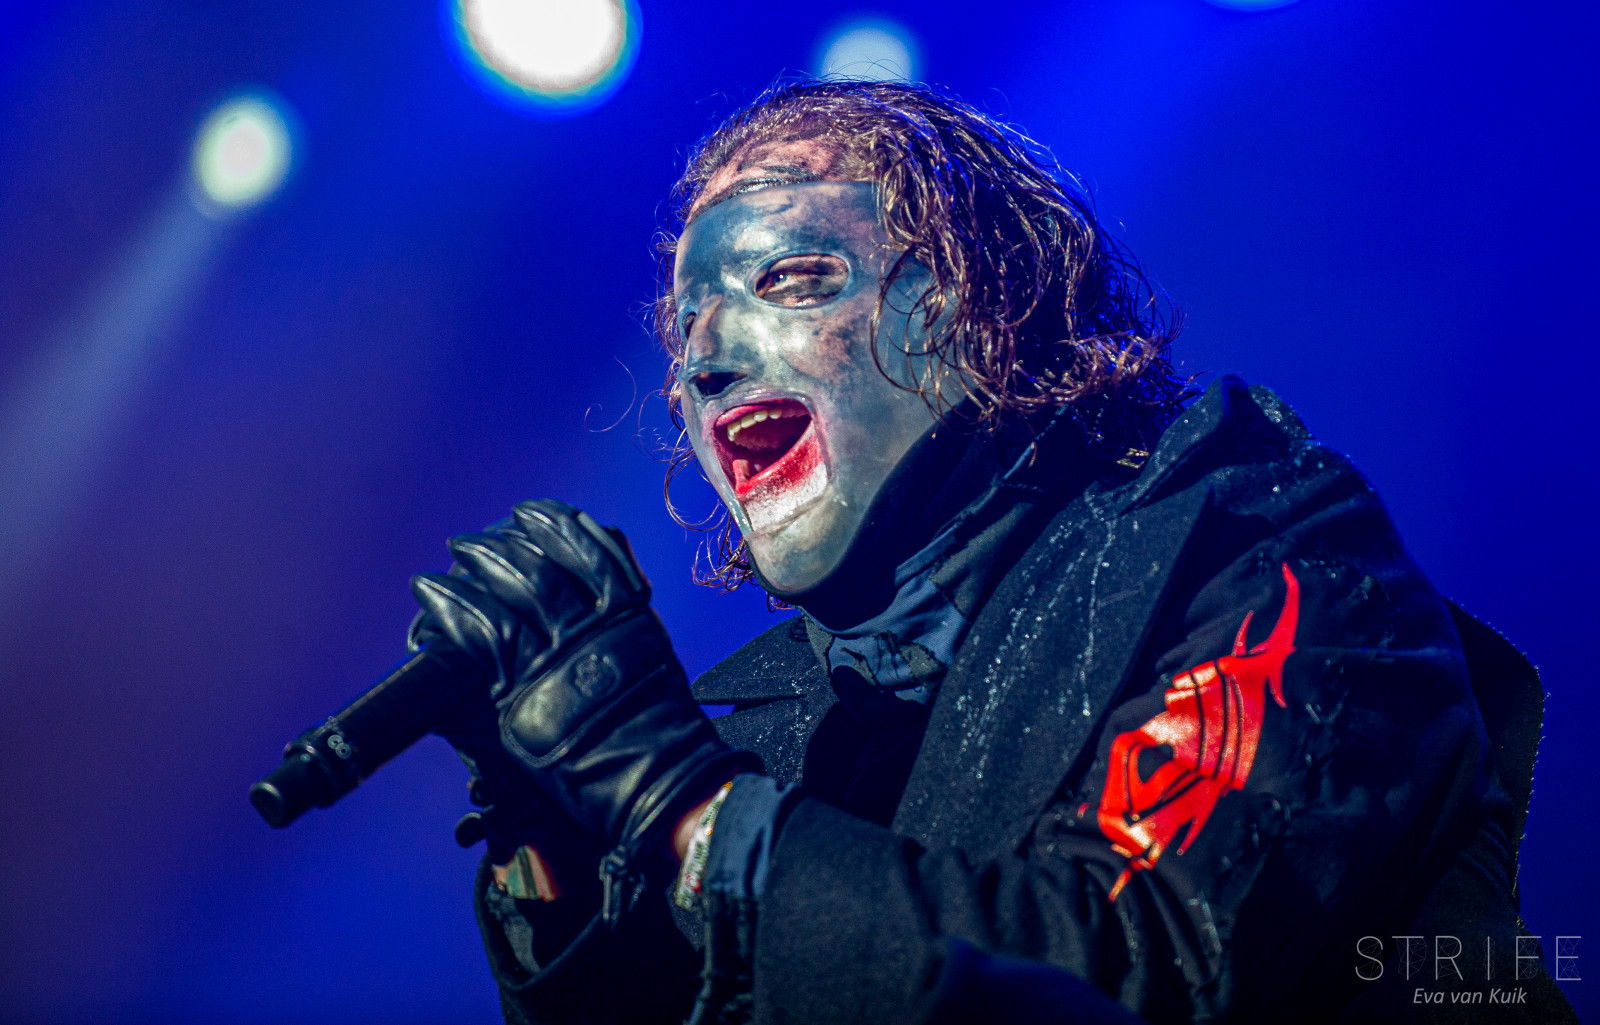 Slipknot Unleash New Single 'Solway Firth' With Graphic